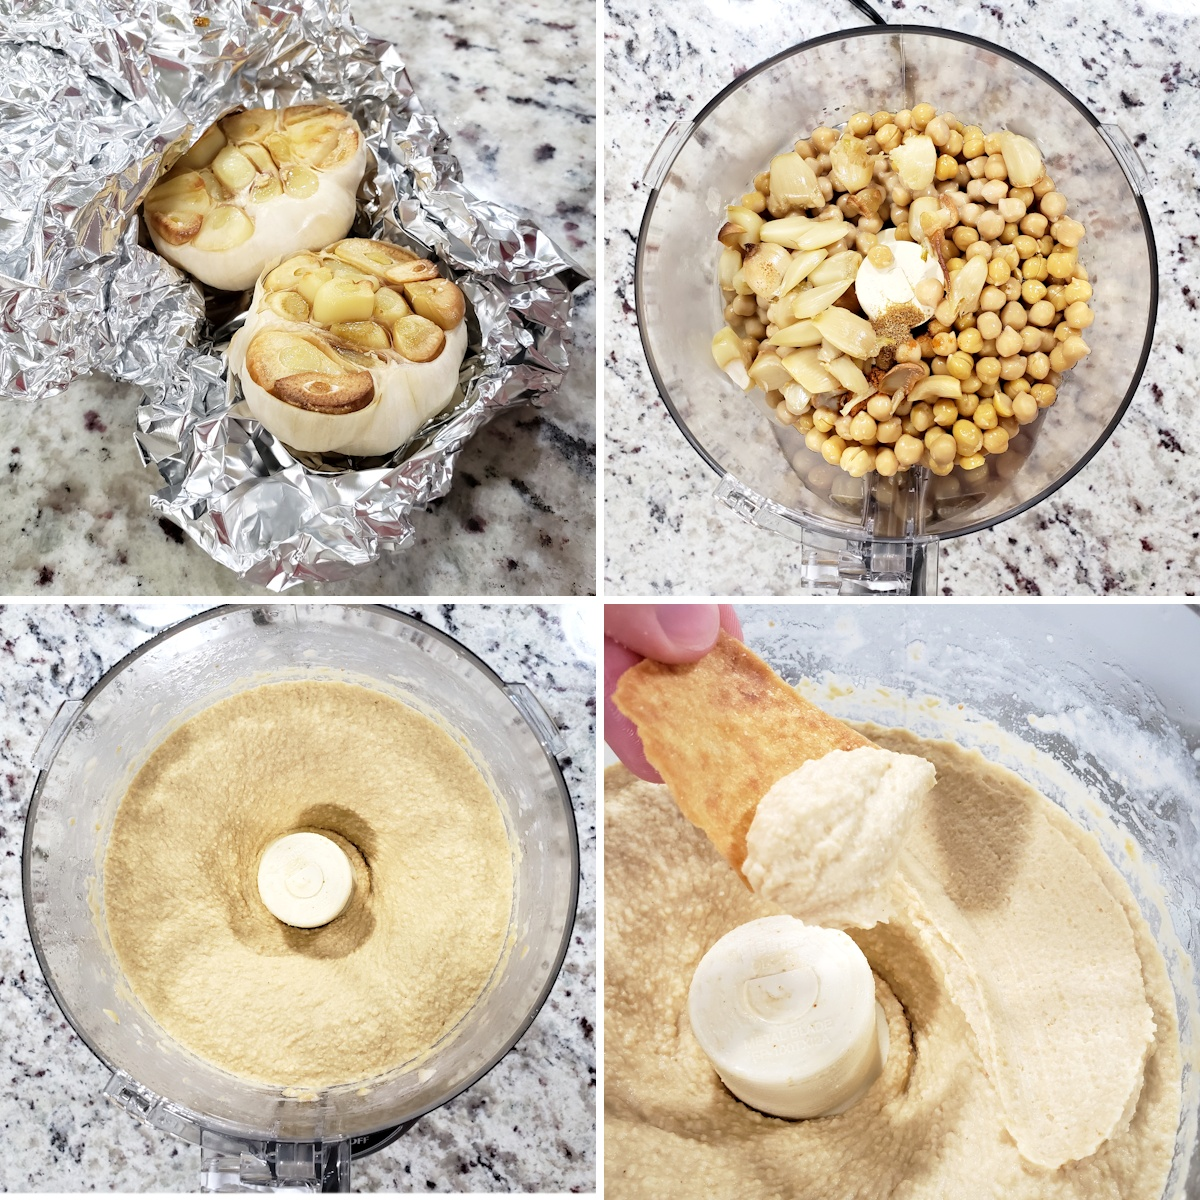 Blending together hummus in a food processor.